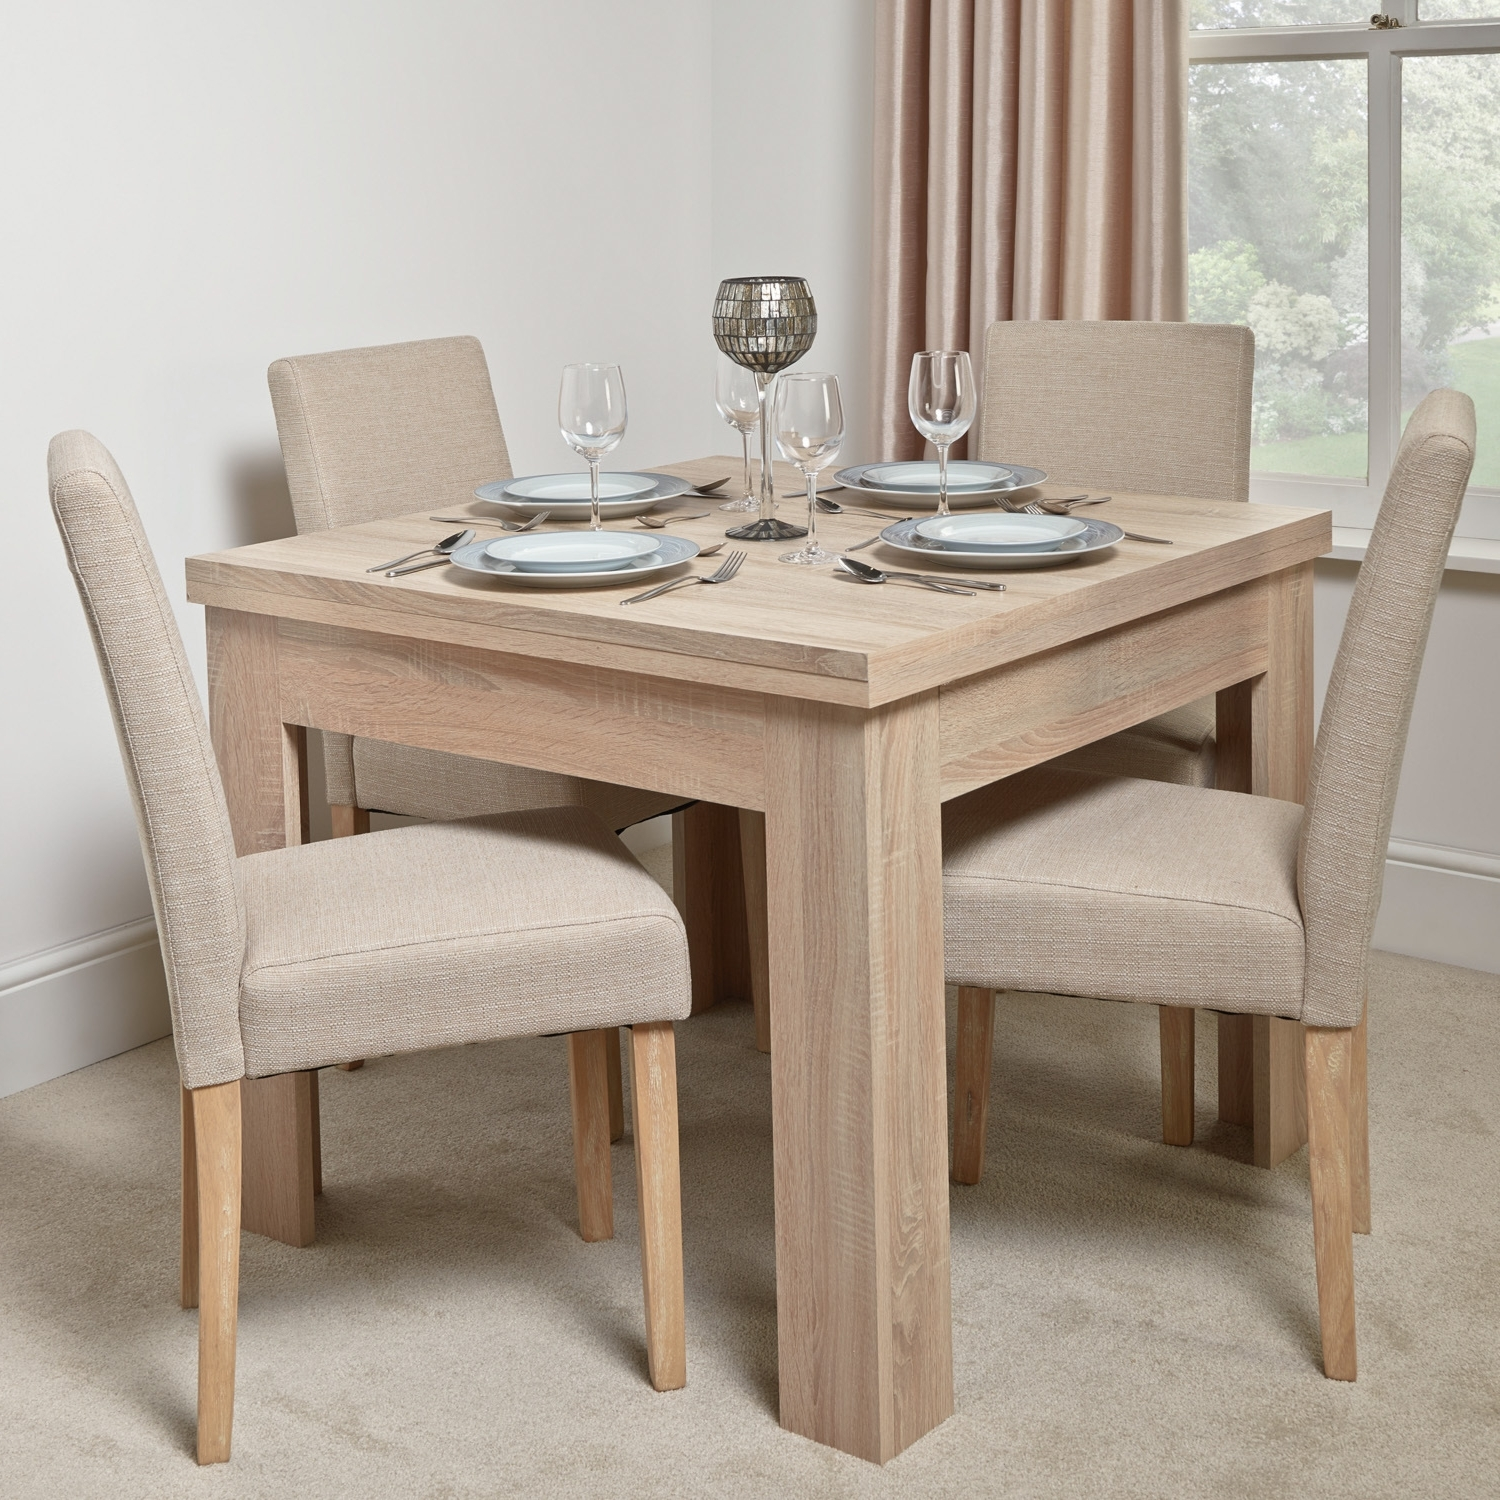 Extending Dining Tables And Chairs With Regard To Fashionable Calpe Flip Extending Dining Table (Gallery 2 of 25)